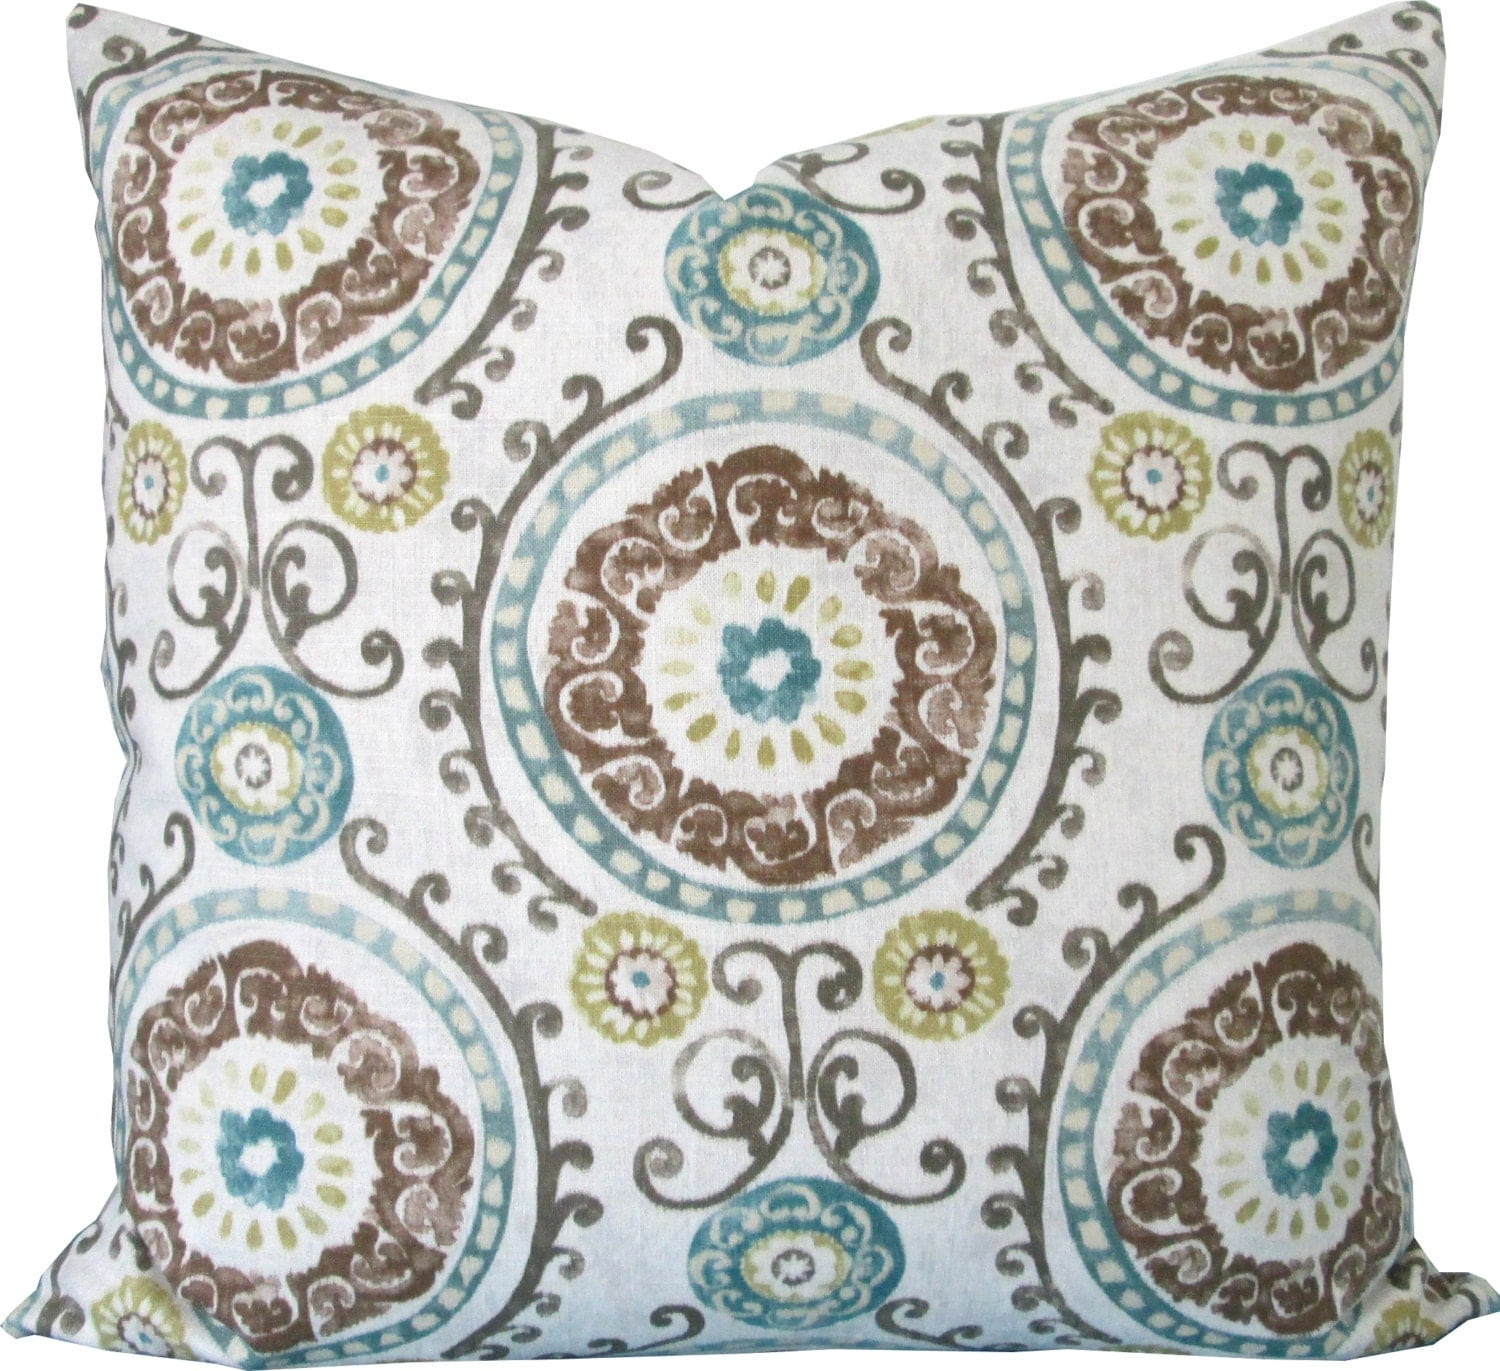 decorative pillow coverteal and brown suzaniaccent by